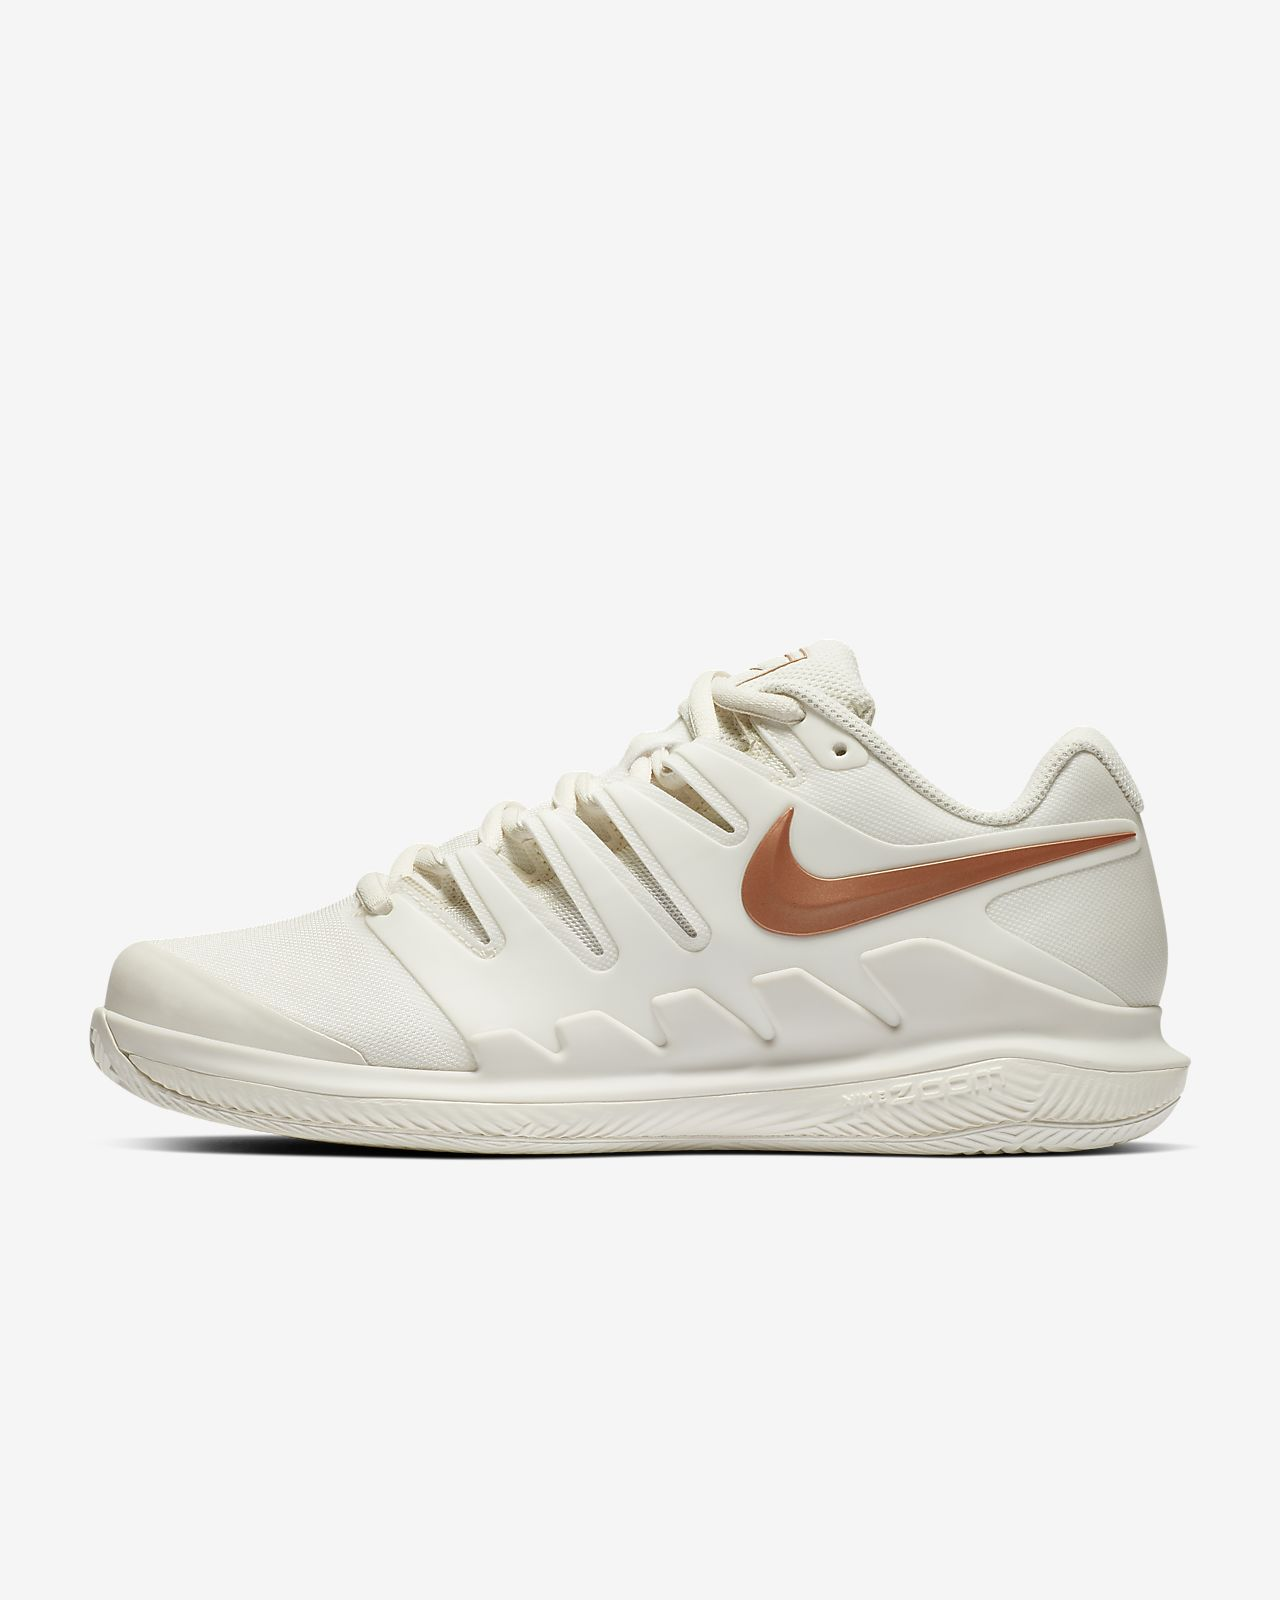 premium selection 0ee44 c1e1c ... Nike Air Zoom Vapor X Clay Zapatillas de tenis - Mujer